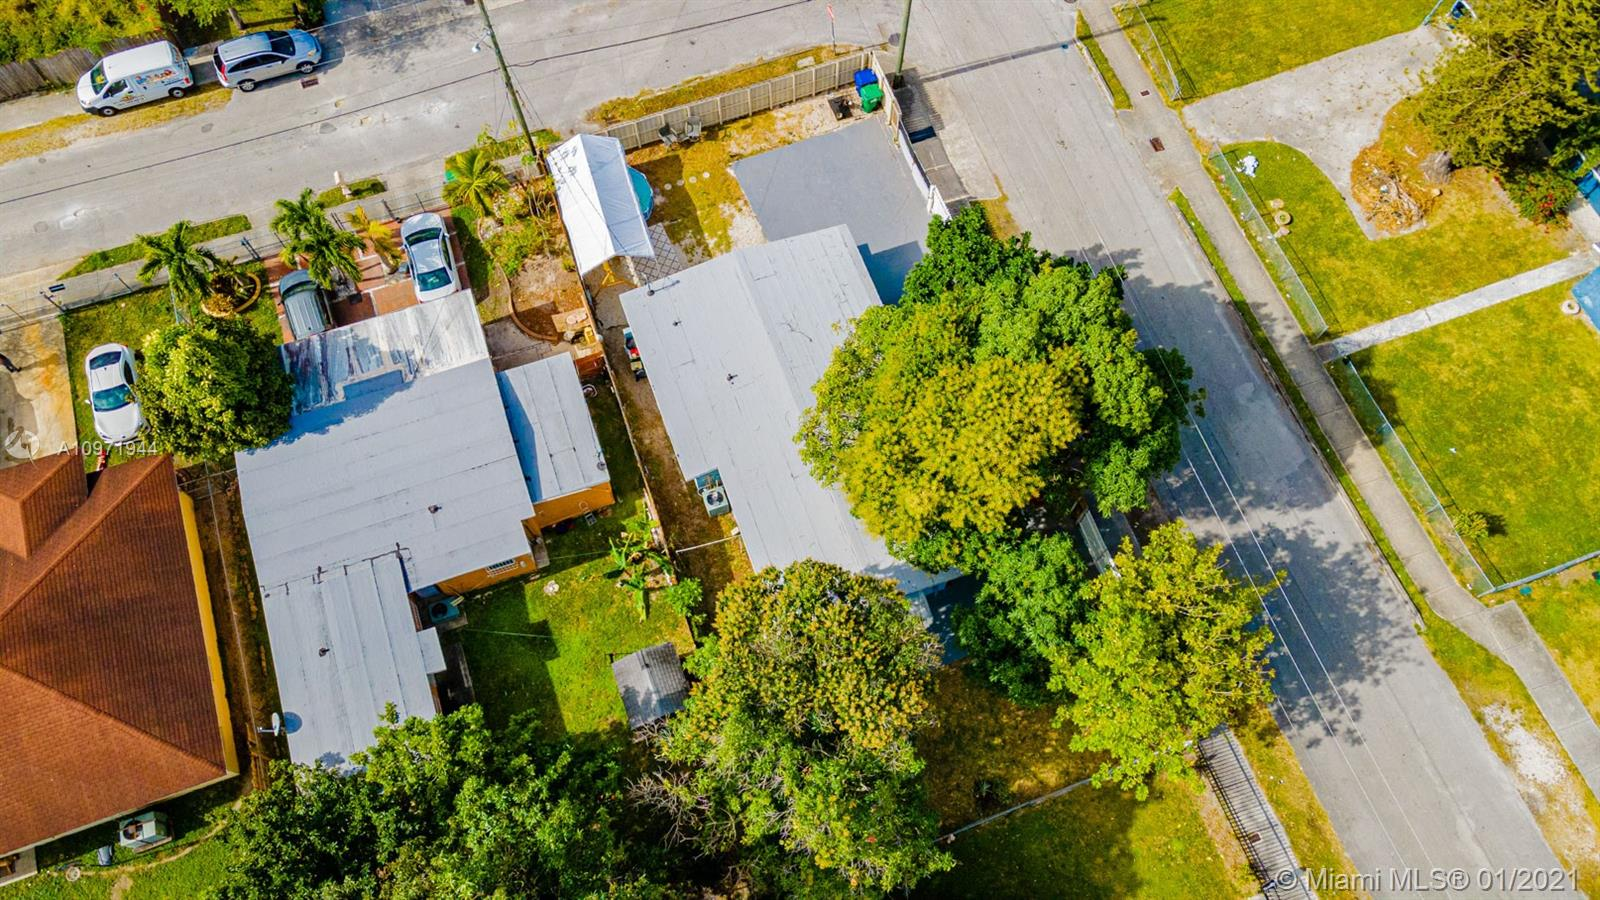 10090 W Fern St, Miami, Florida 33157, 3 Bedrooms Bedrooms, ,2 BathroomsBathrooms,Residential,For Sale,10090 W Fern St,A10971944